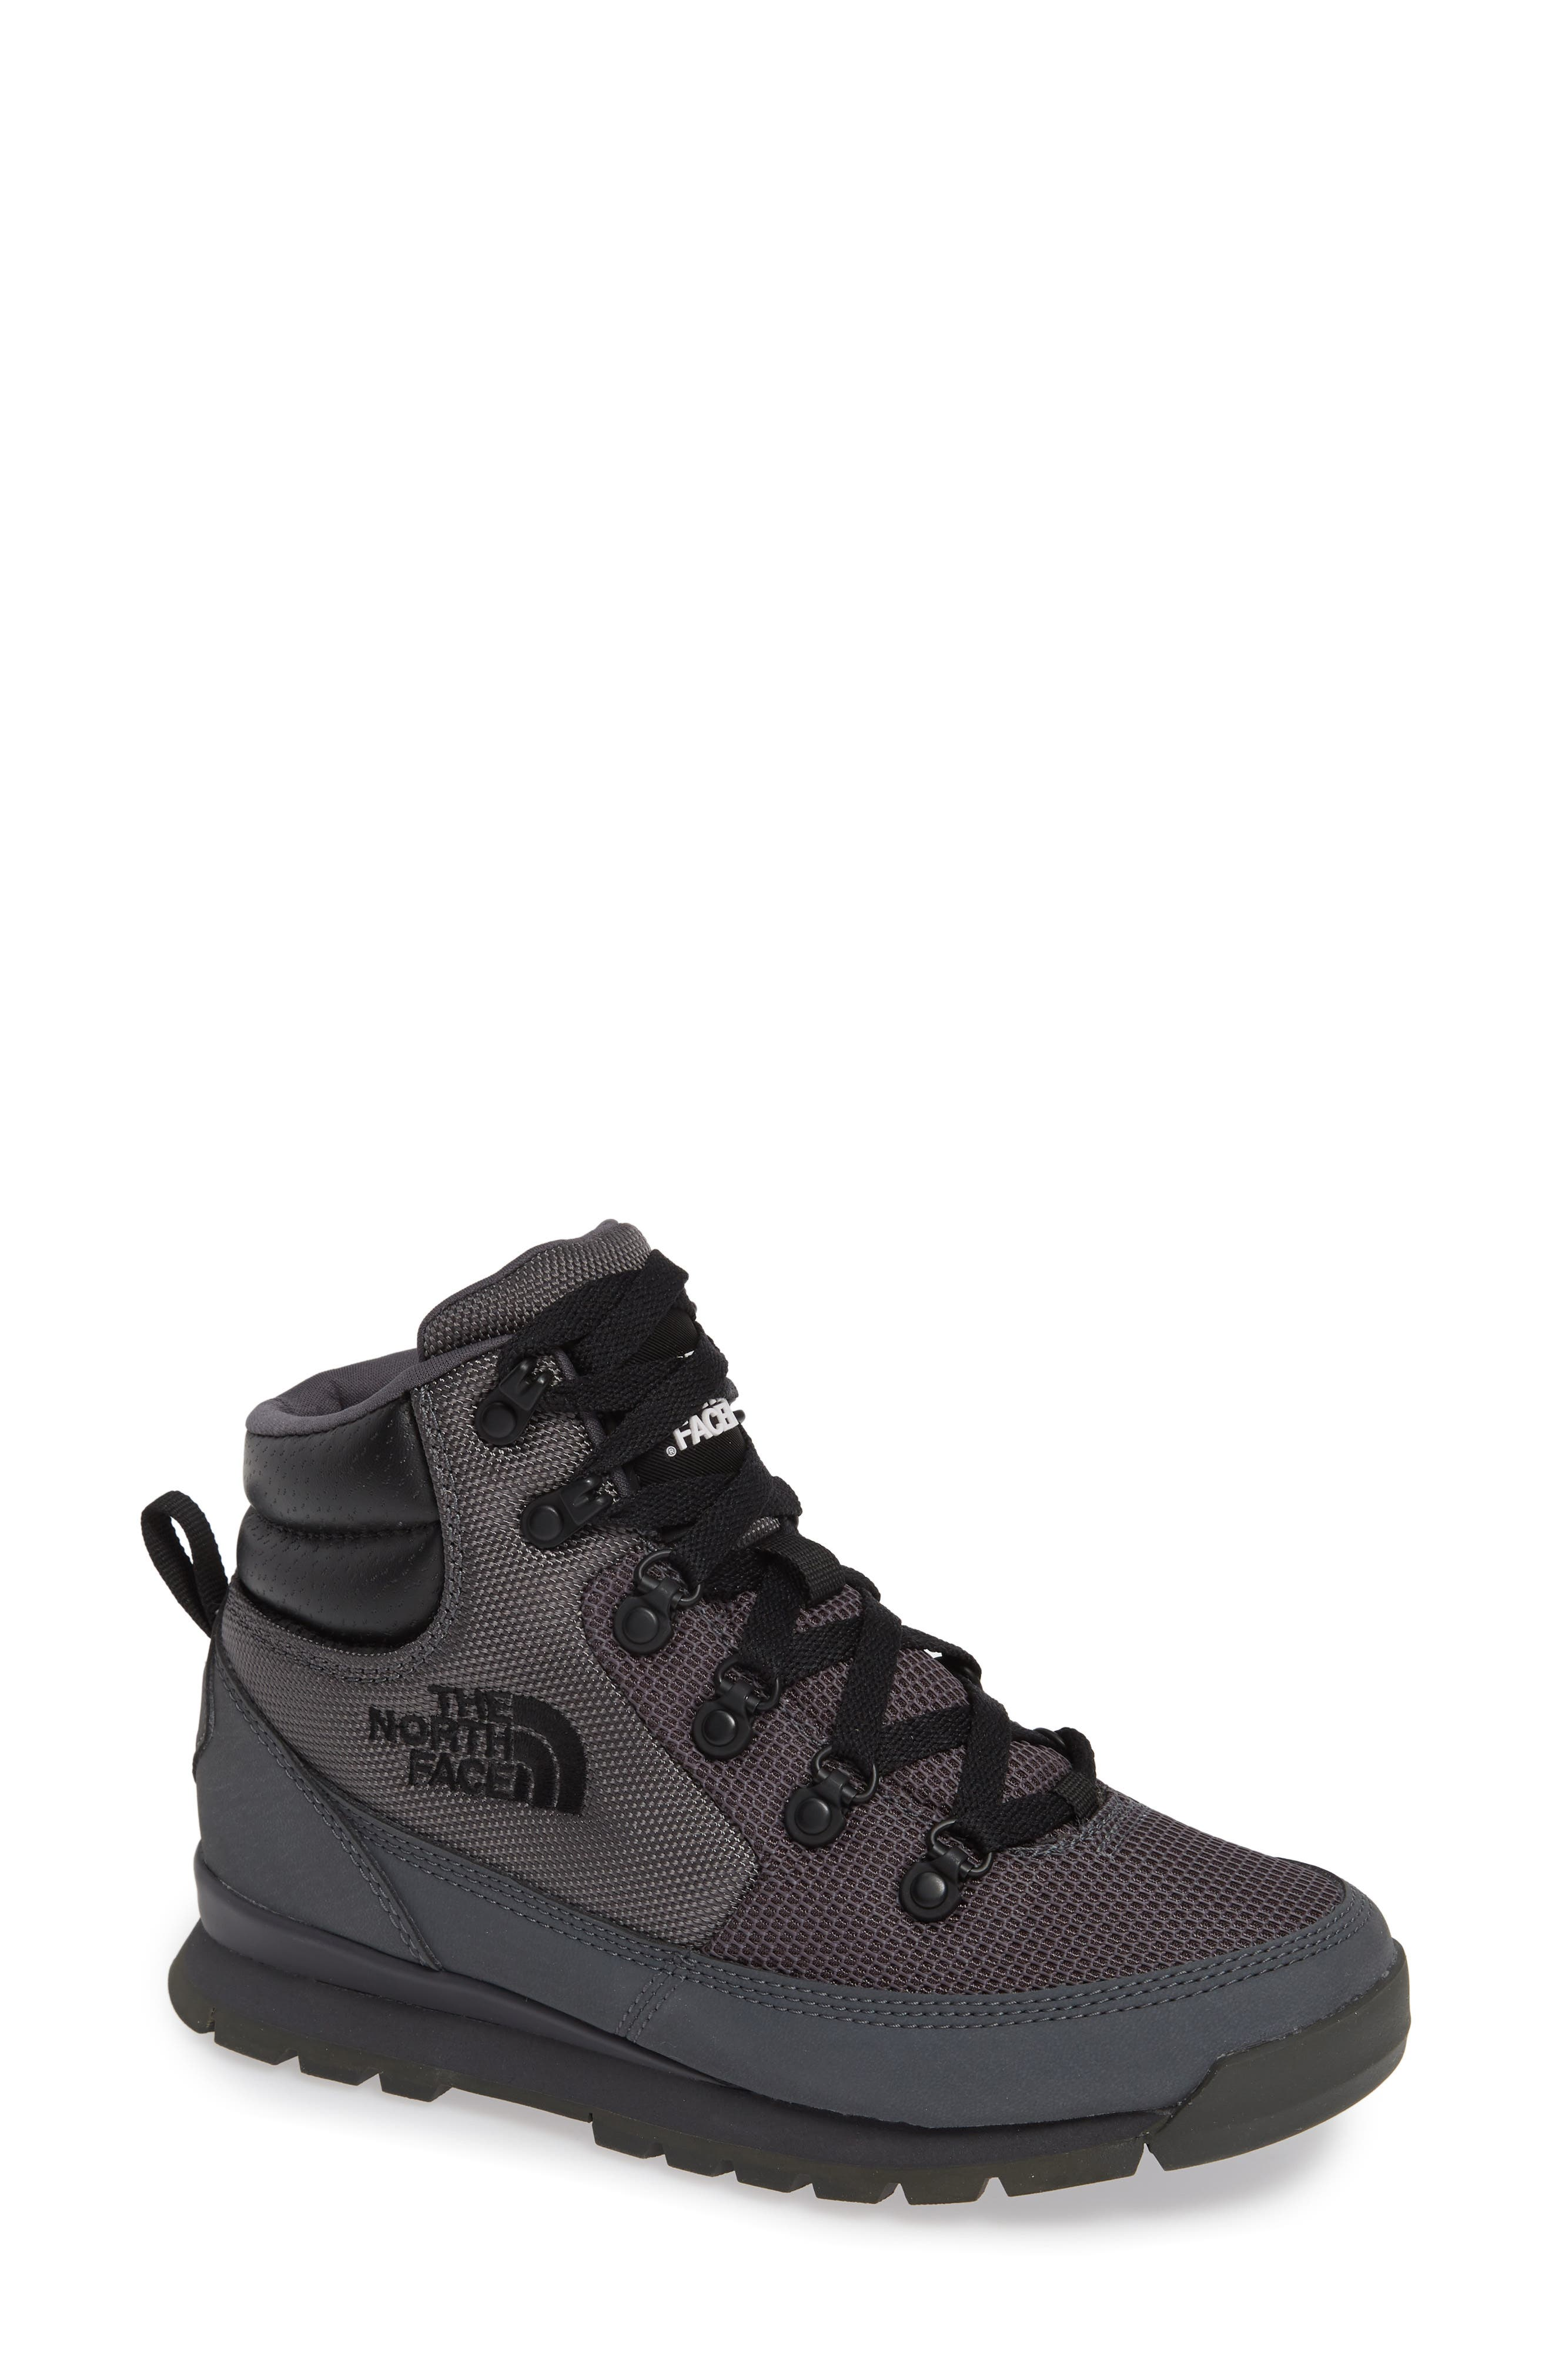 The North Face Back To Berkeley Redux Waterproof Boot